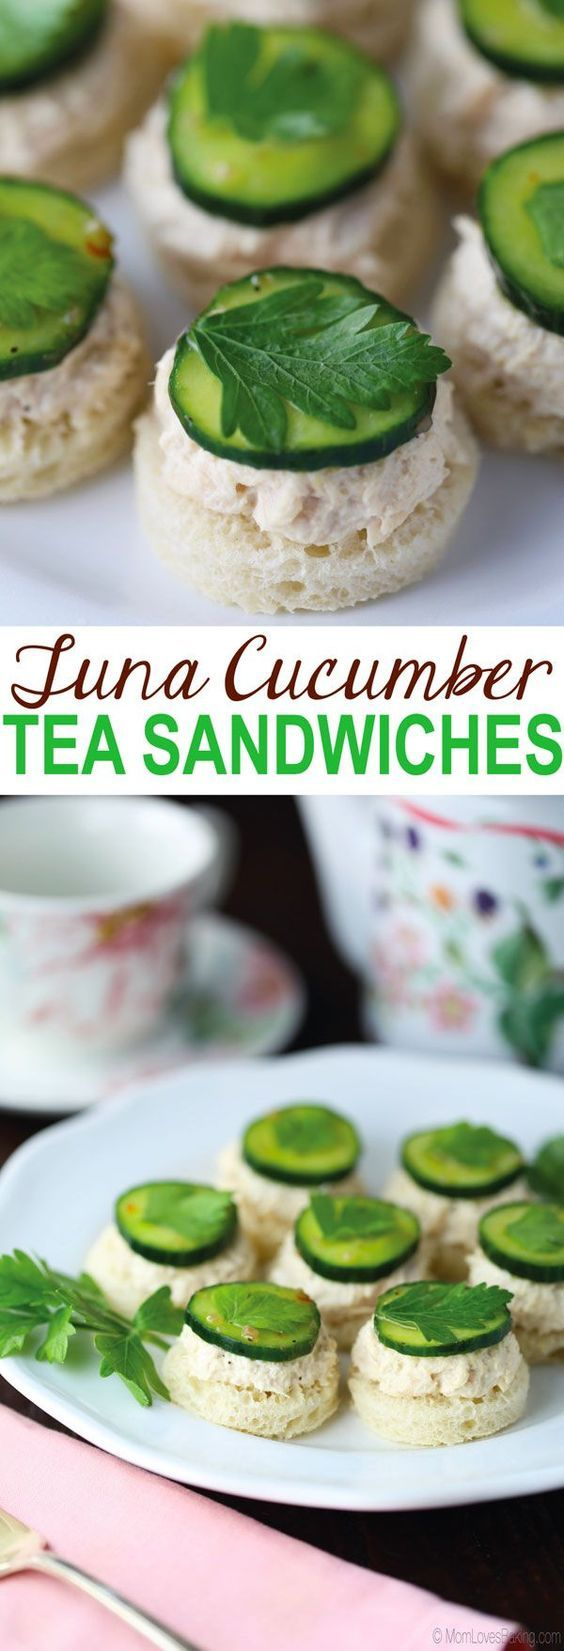 Tuna Cucumber Tea Sandwiches (mini bread rounds with tuna salad and cucumbers) are part of a sponsored post written by me on behalf of @BumbleBeeSeafoods AD OnlyAlbacore